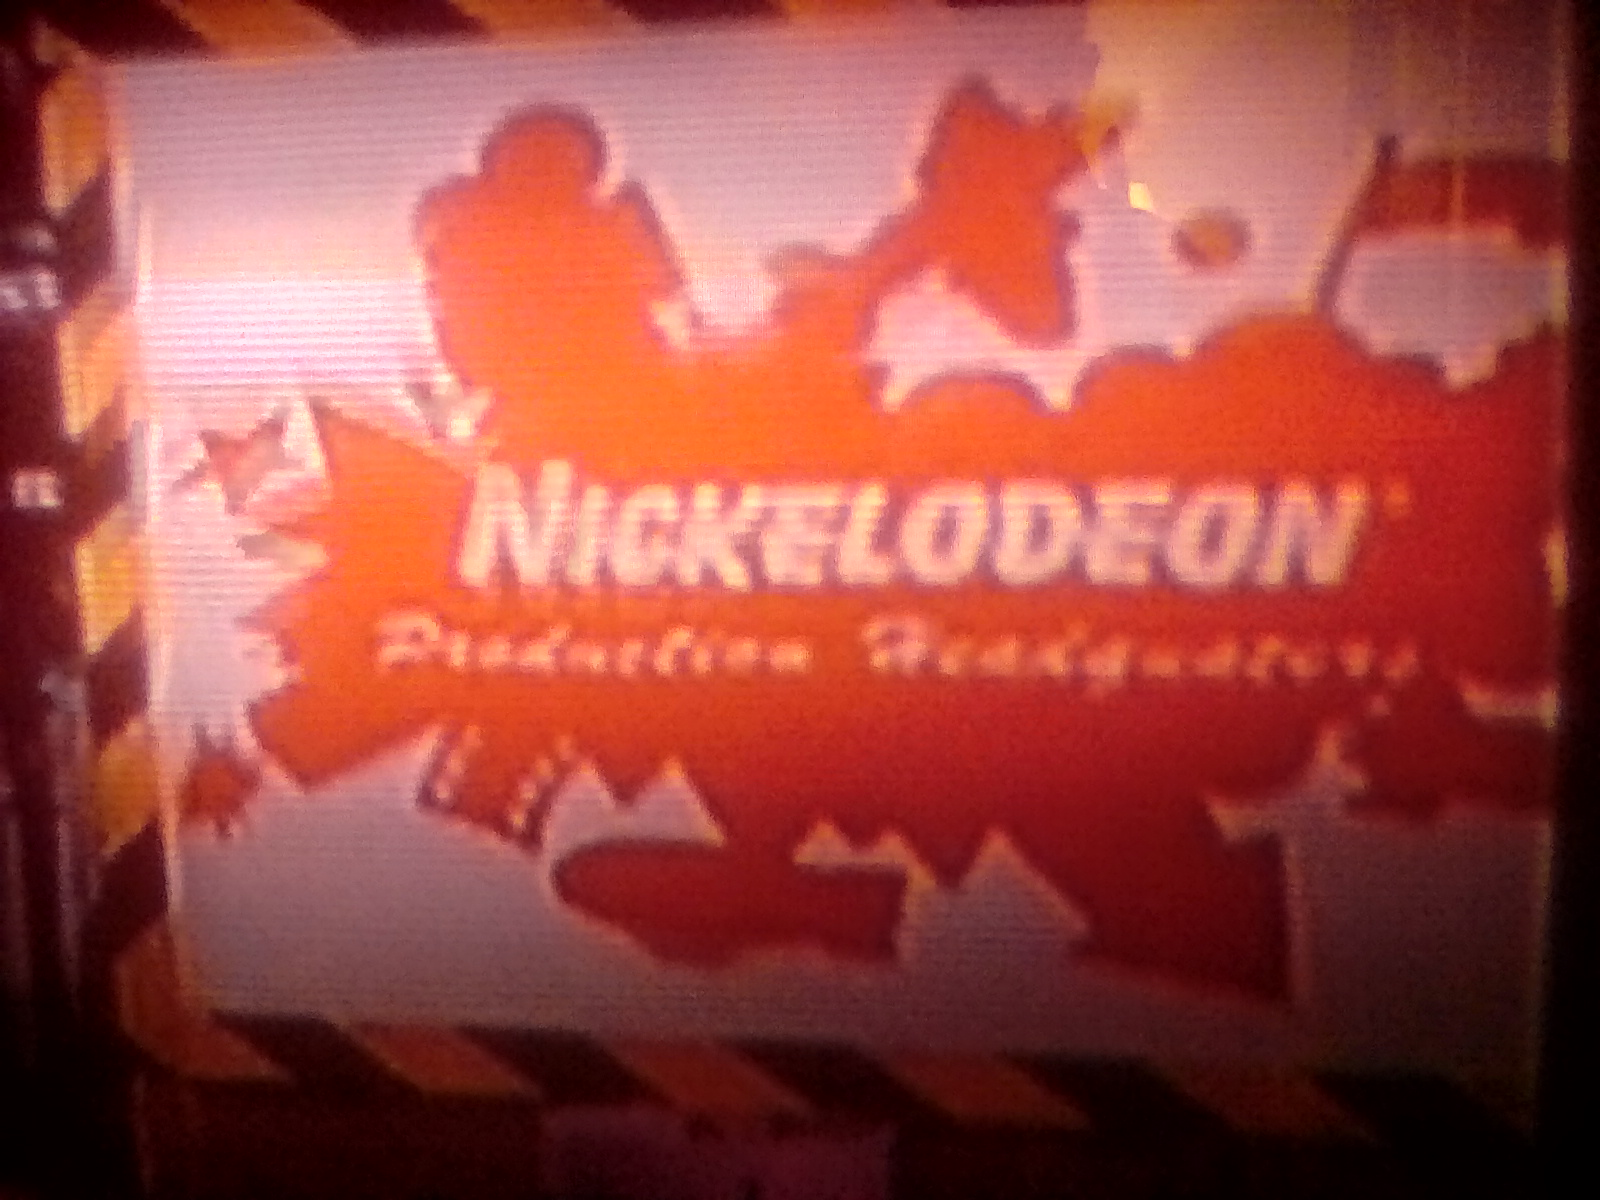 Nickelodeon Production Headquarters